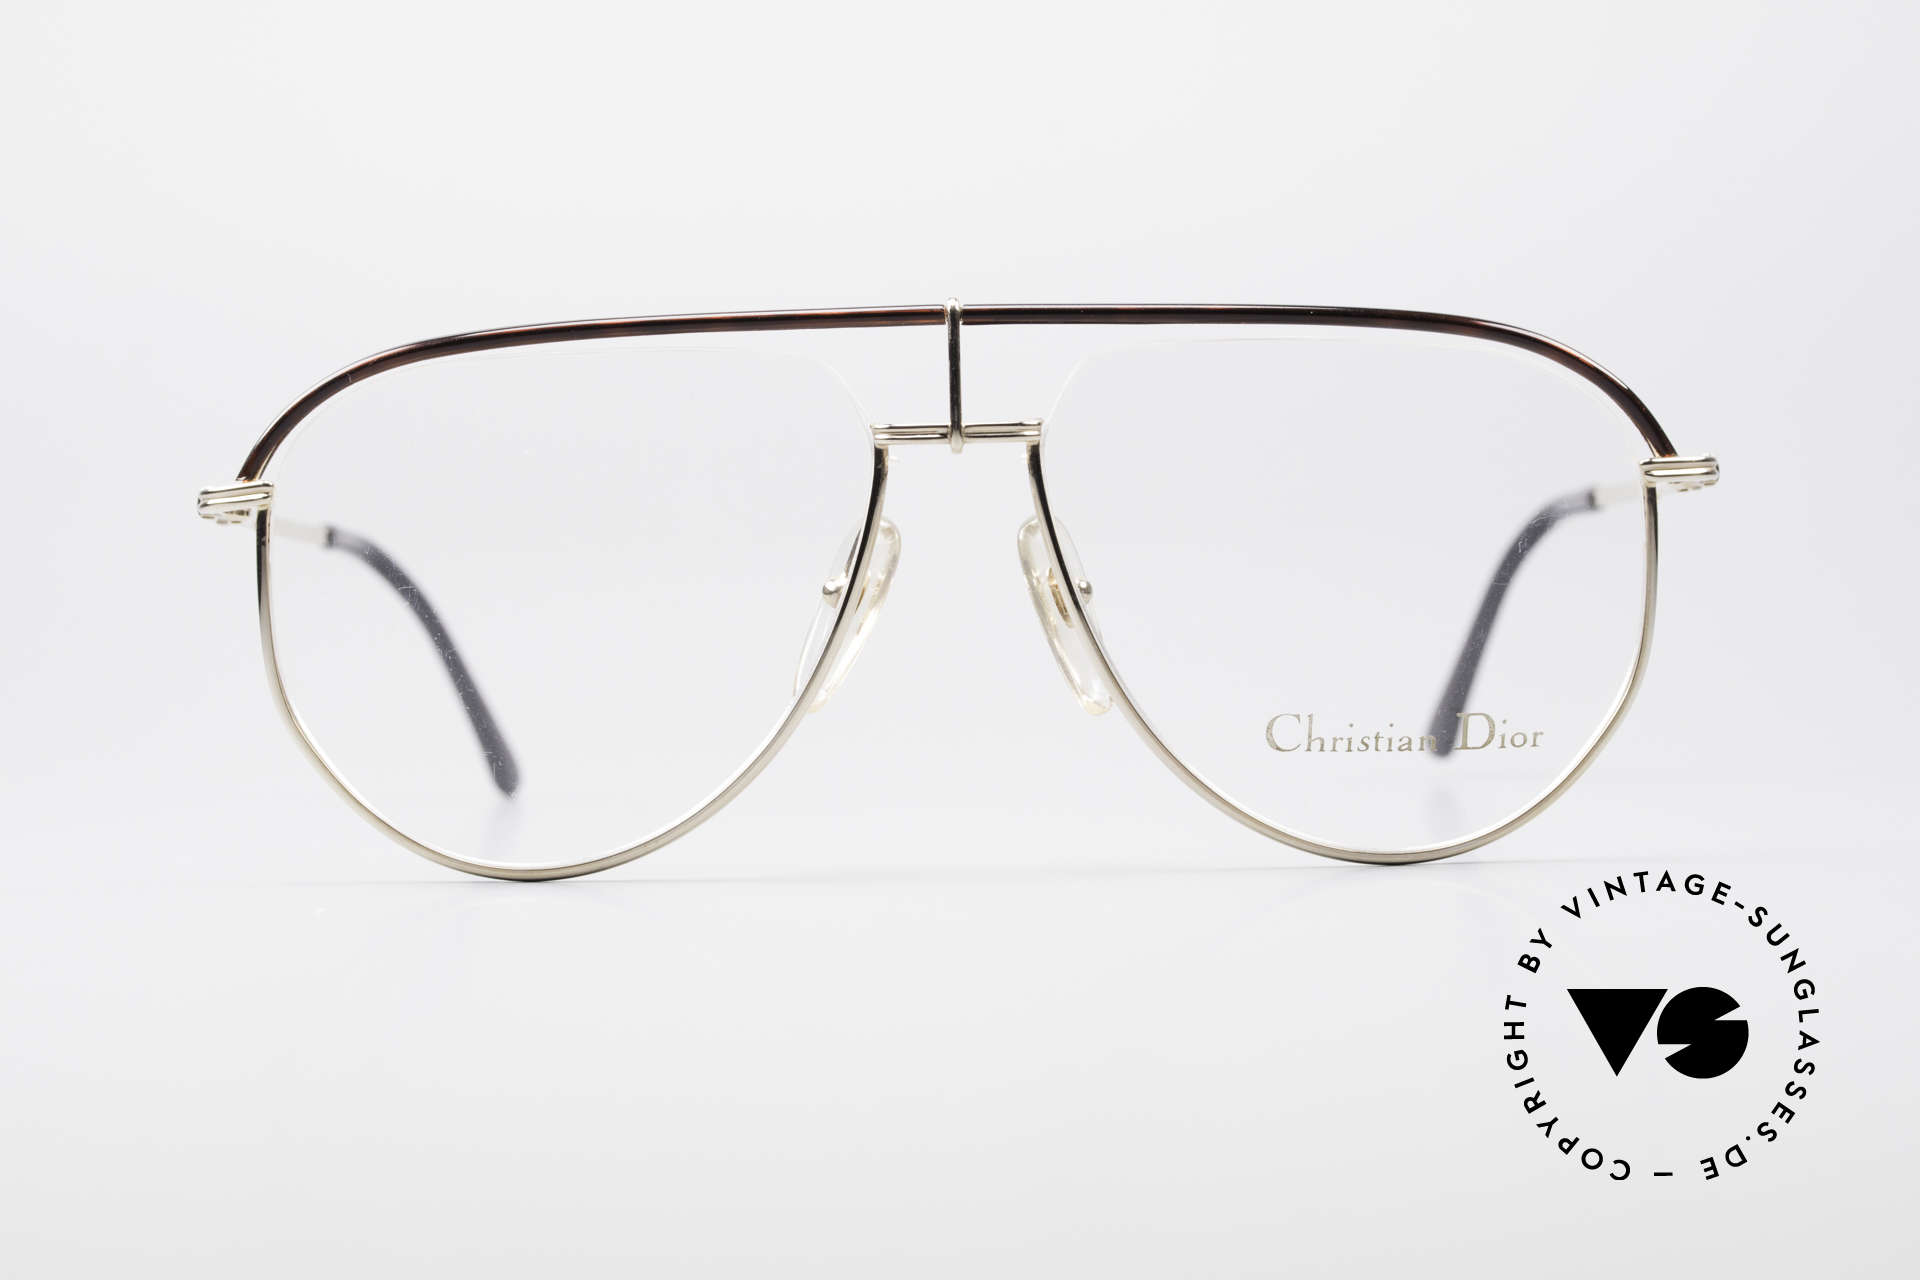 99c0b766e0 You may also like these glasses. Christian Dior 2248 XL 80 s Sunglasses  Details